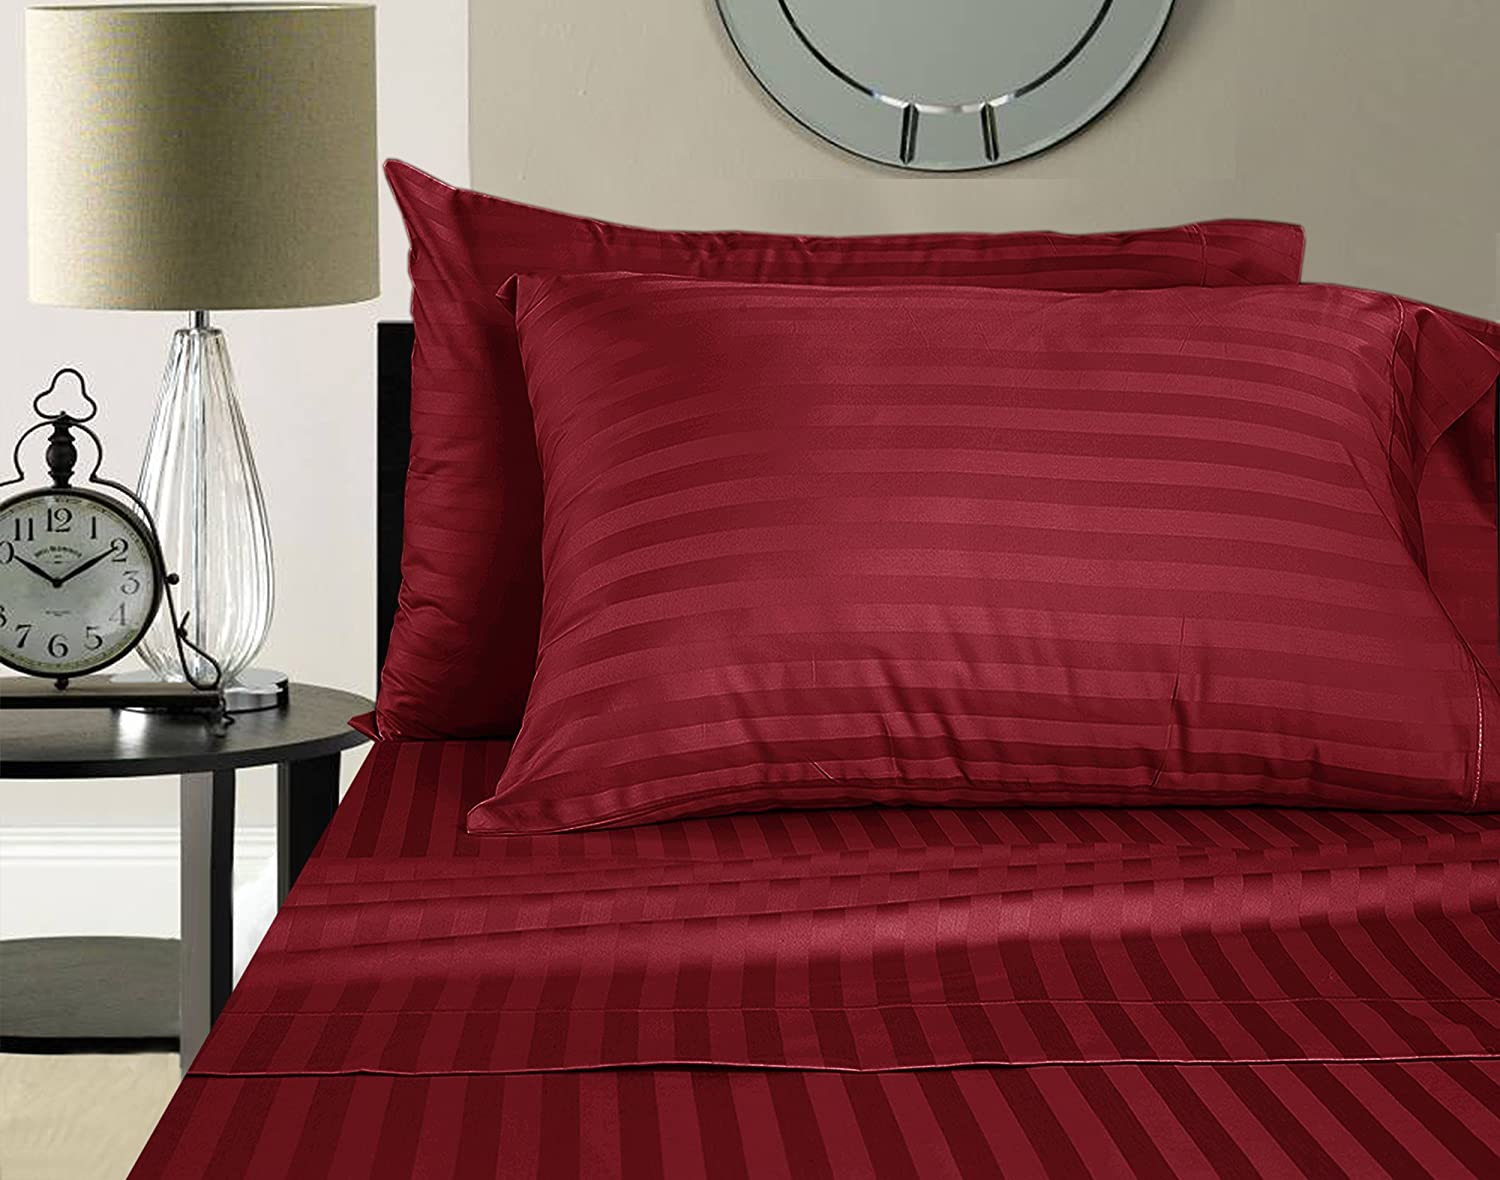 Addy Home Fashions Egyptian Cotton 500 Thread Count Damask Stripe Sheet Set, Queen - Burgundy